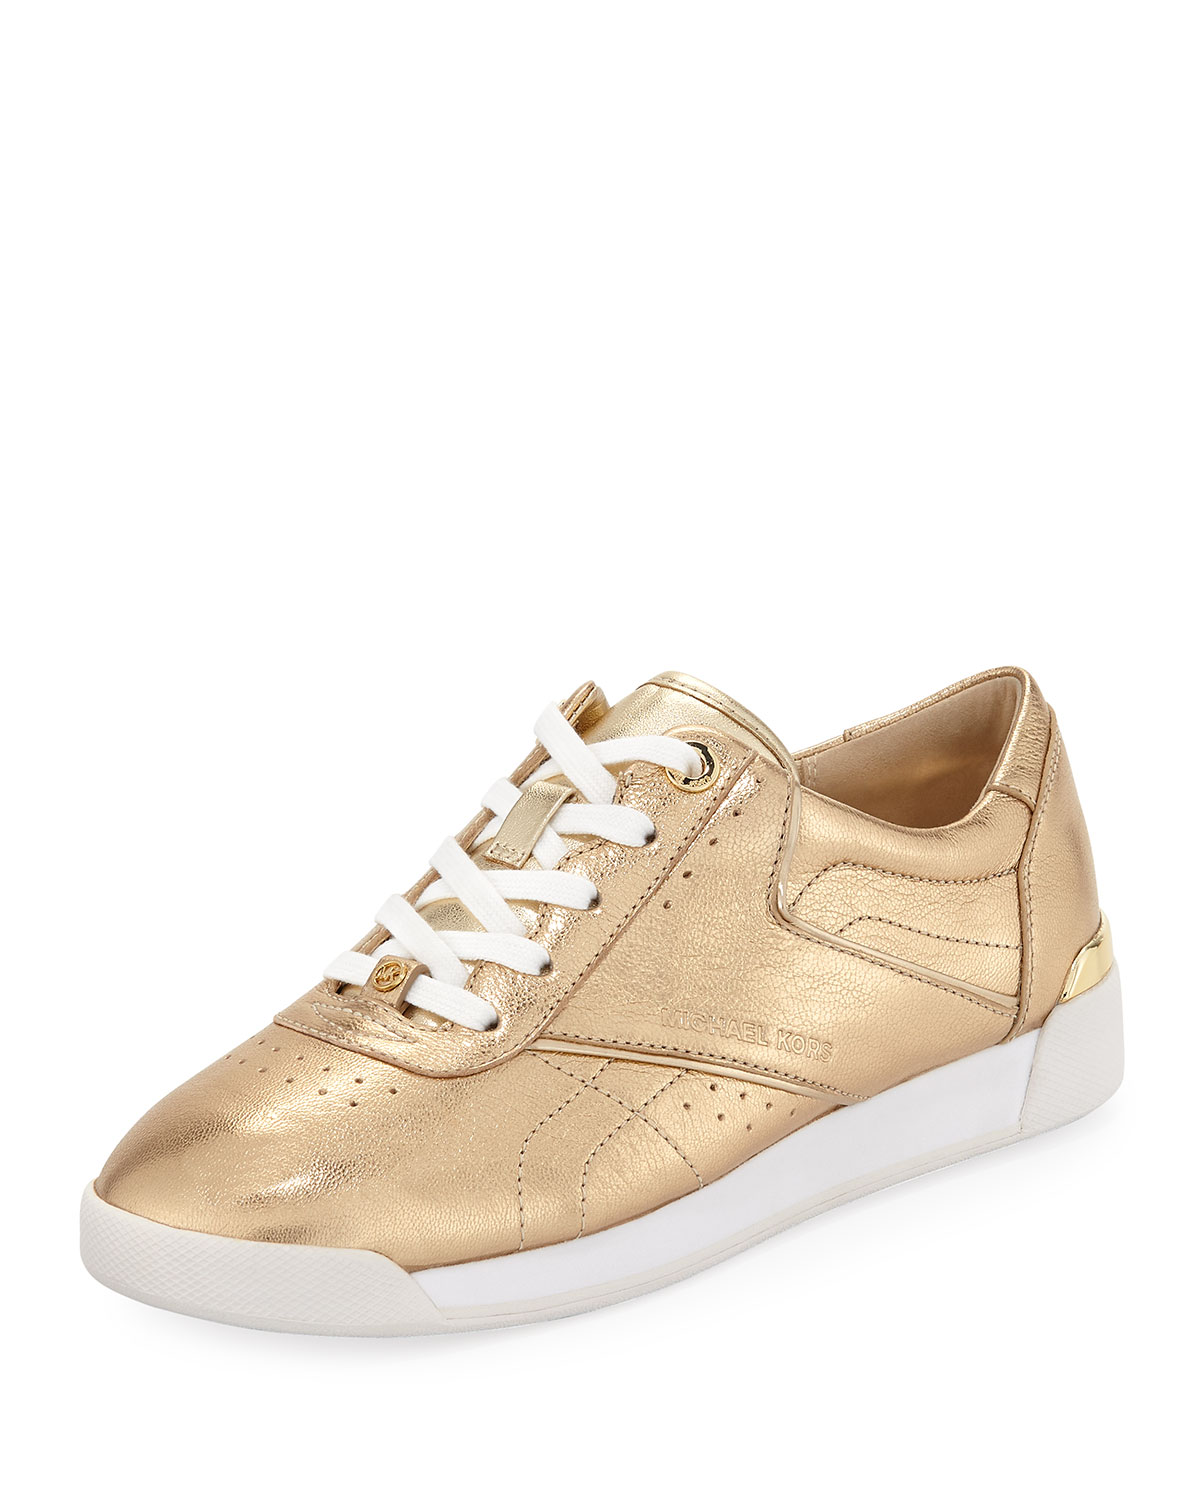 michael kors addie lace up sneakers